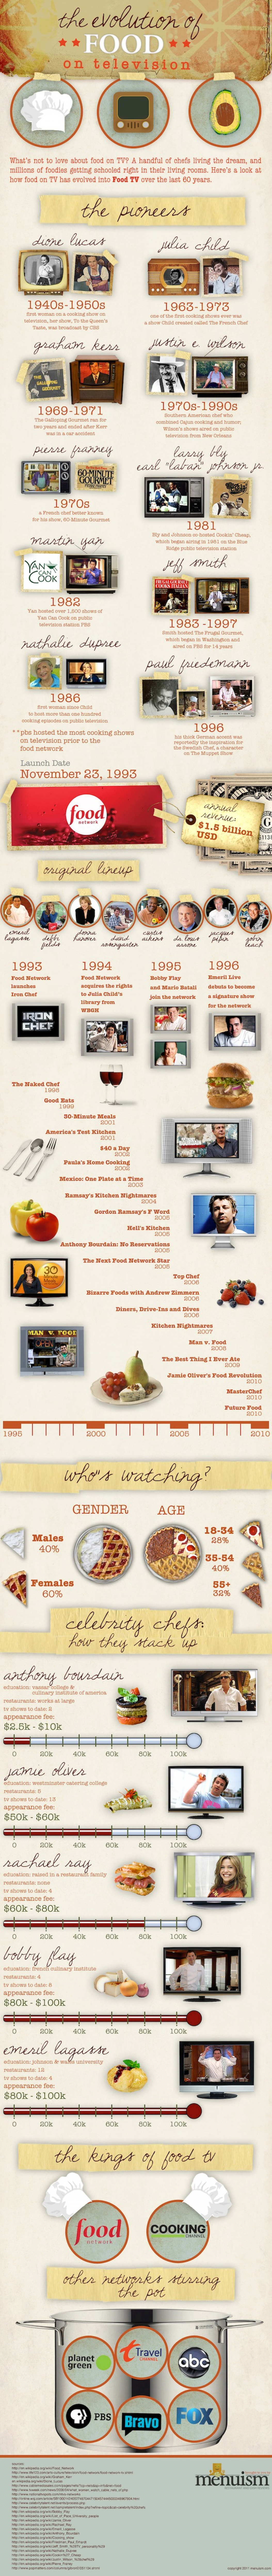 The Evolution of Food on TV Infographic